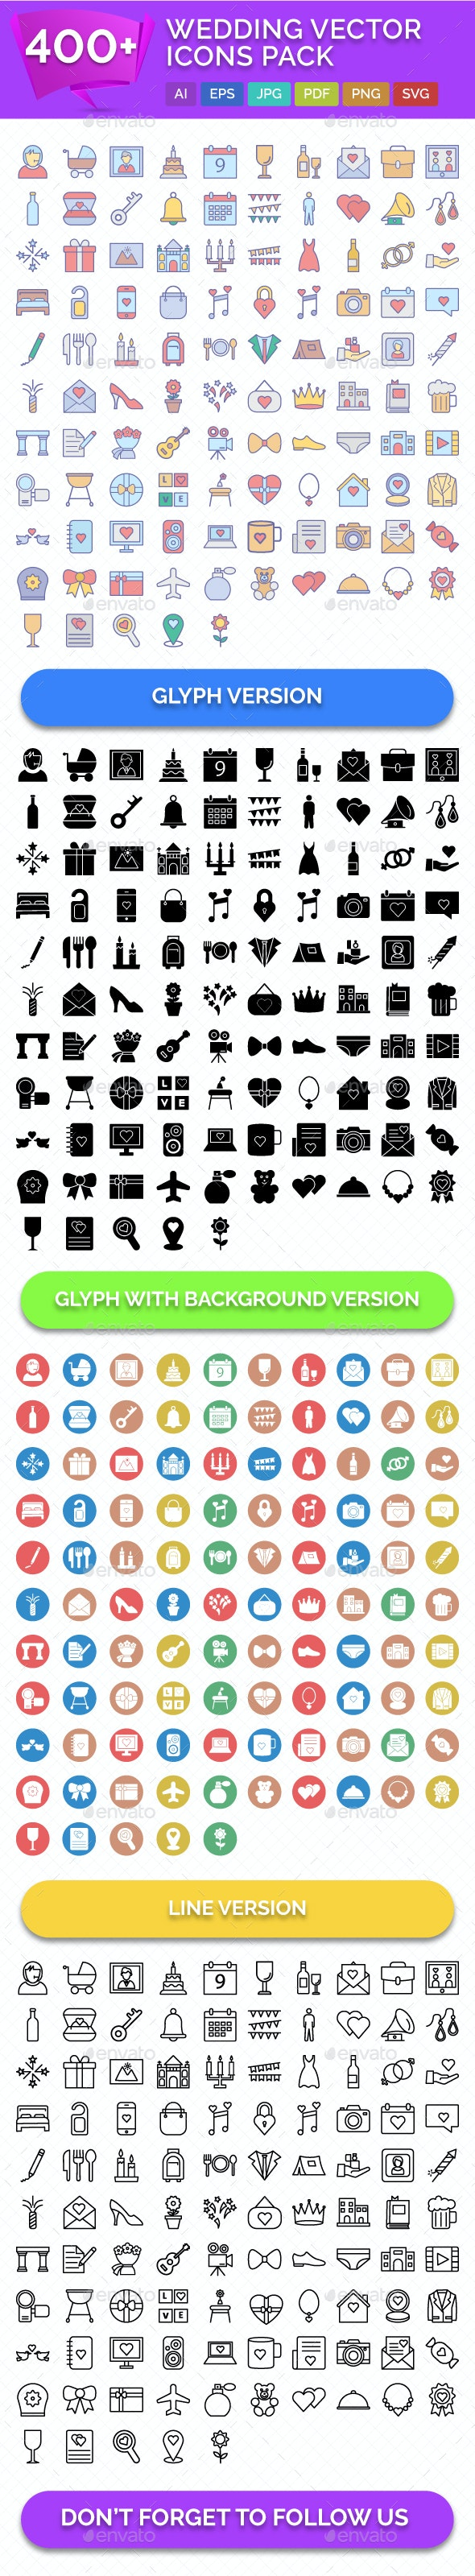 400+ Wedding Vector Icons Pack - Icons